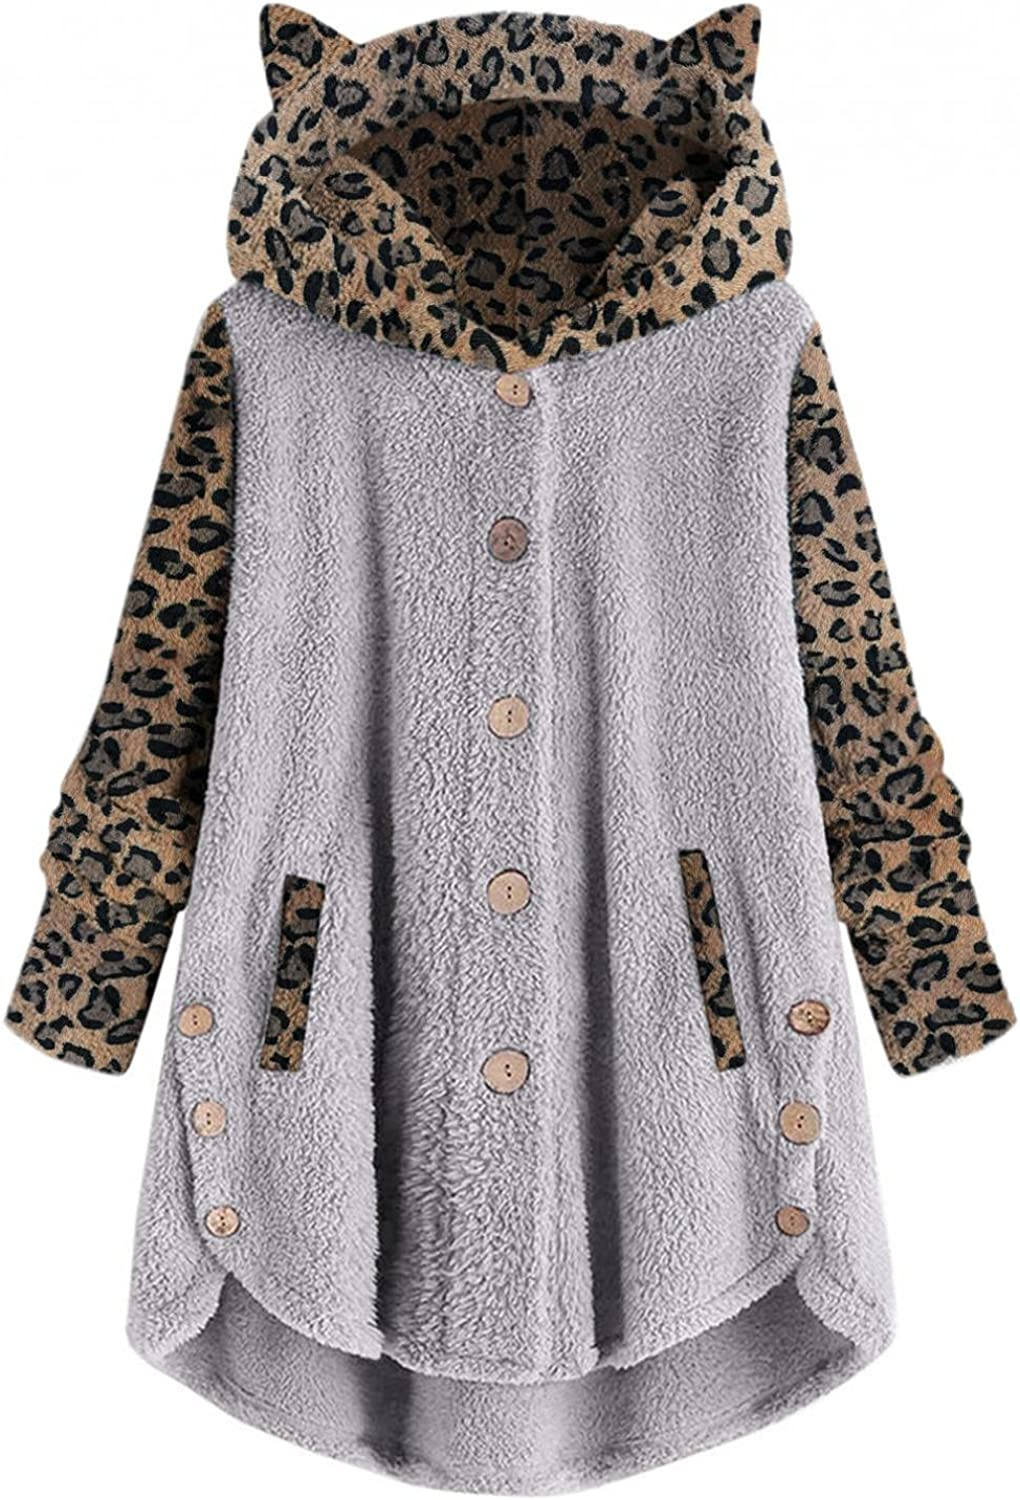 Evangelia.YM lowest Don't miss the campaign price Womens Plush Cardigan Coat Button for Leopard Women